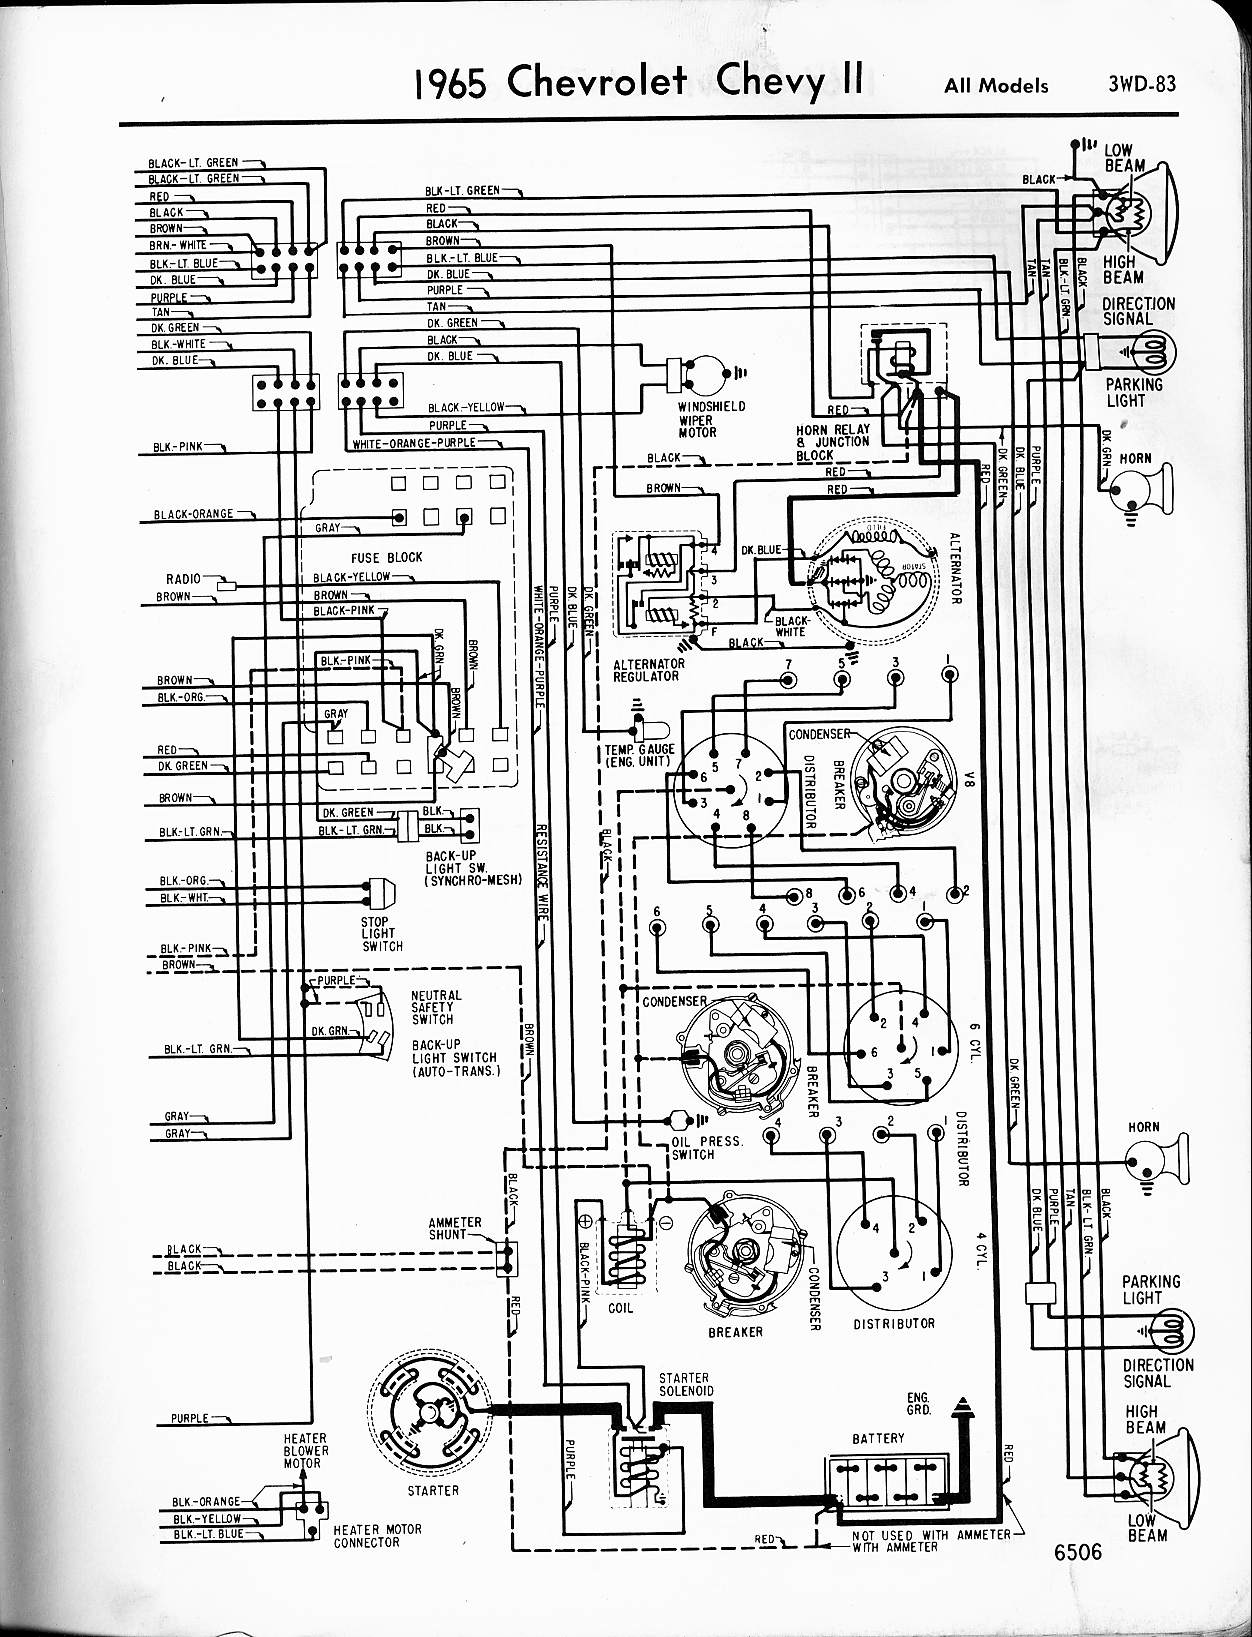 Chevy Diagrams. 1965 Chevy Ii Wiring Diagram Ure A B. GM. Basic GM Wiring Diagram At Scoala.co